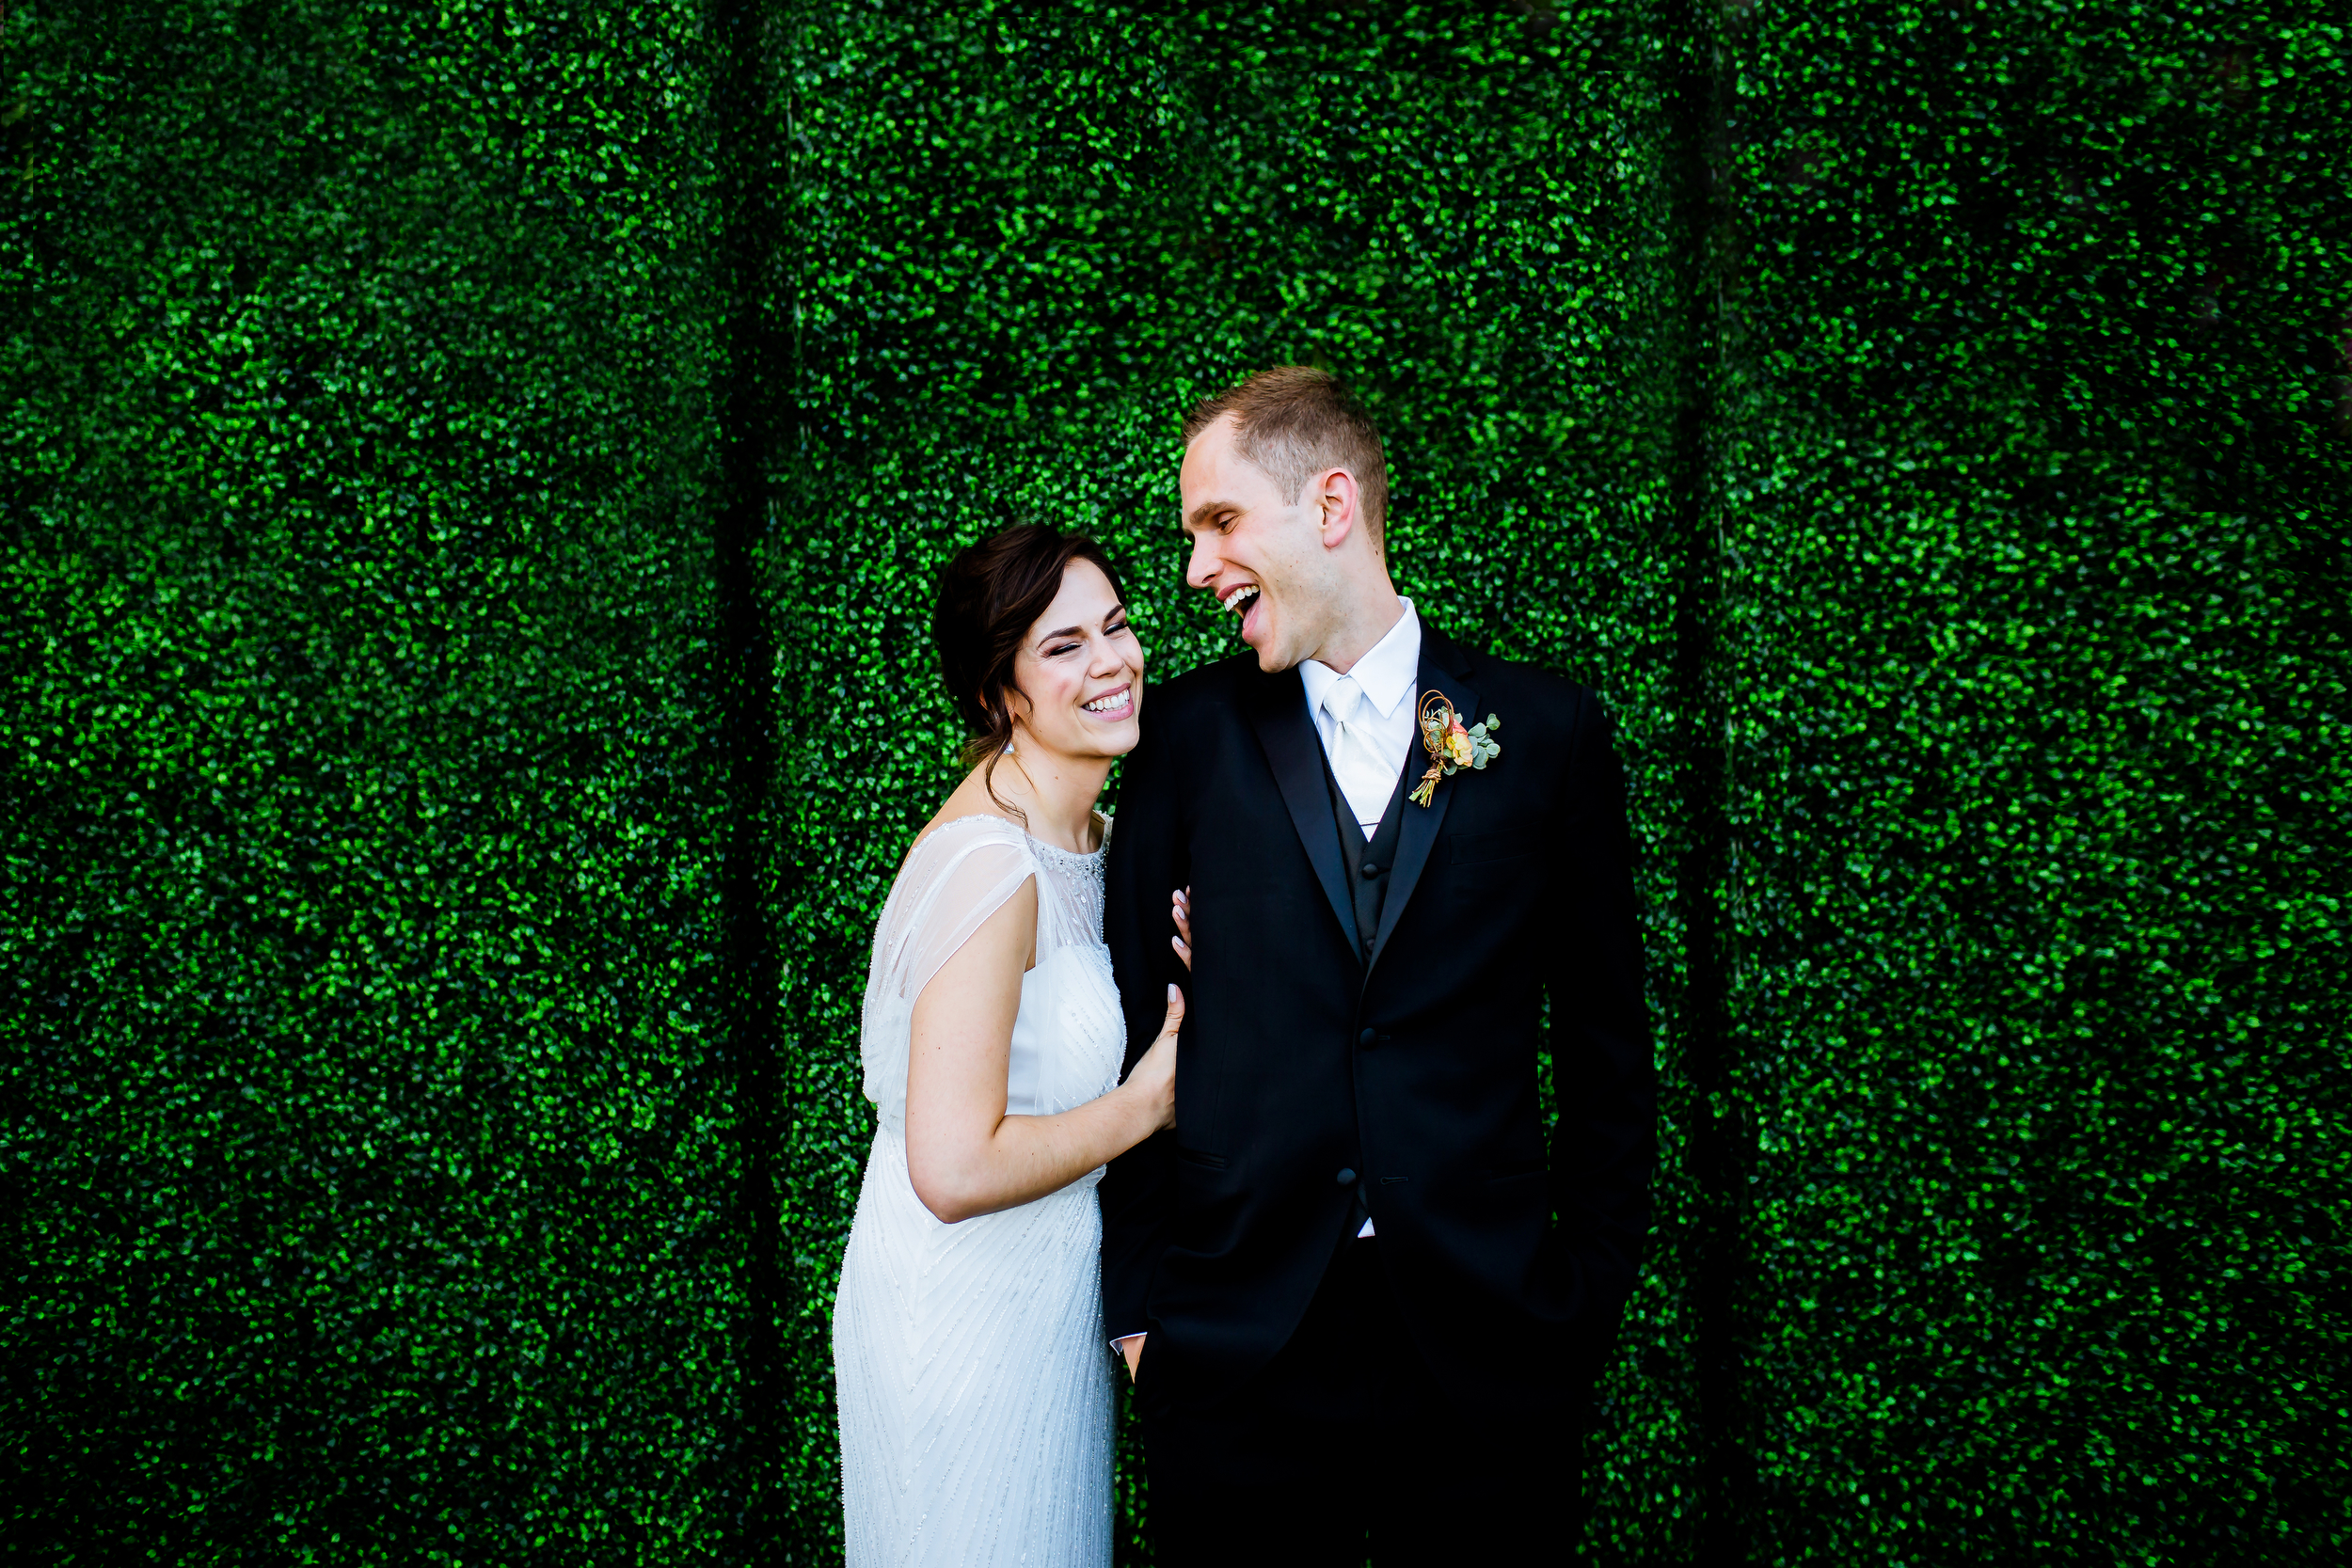 A beautiful sunny wedding at Columbia Gorge Hotel in Hood River photographed by Portland photographers, Daniel and Lindsay Stark.